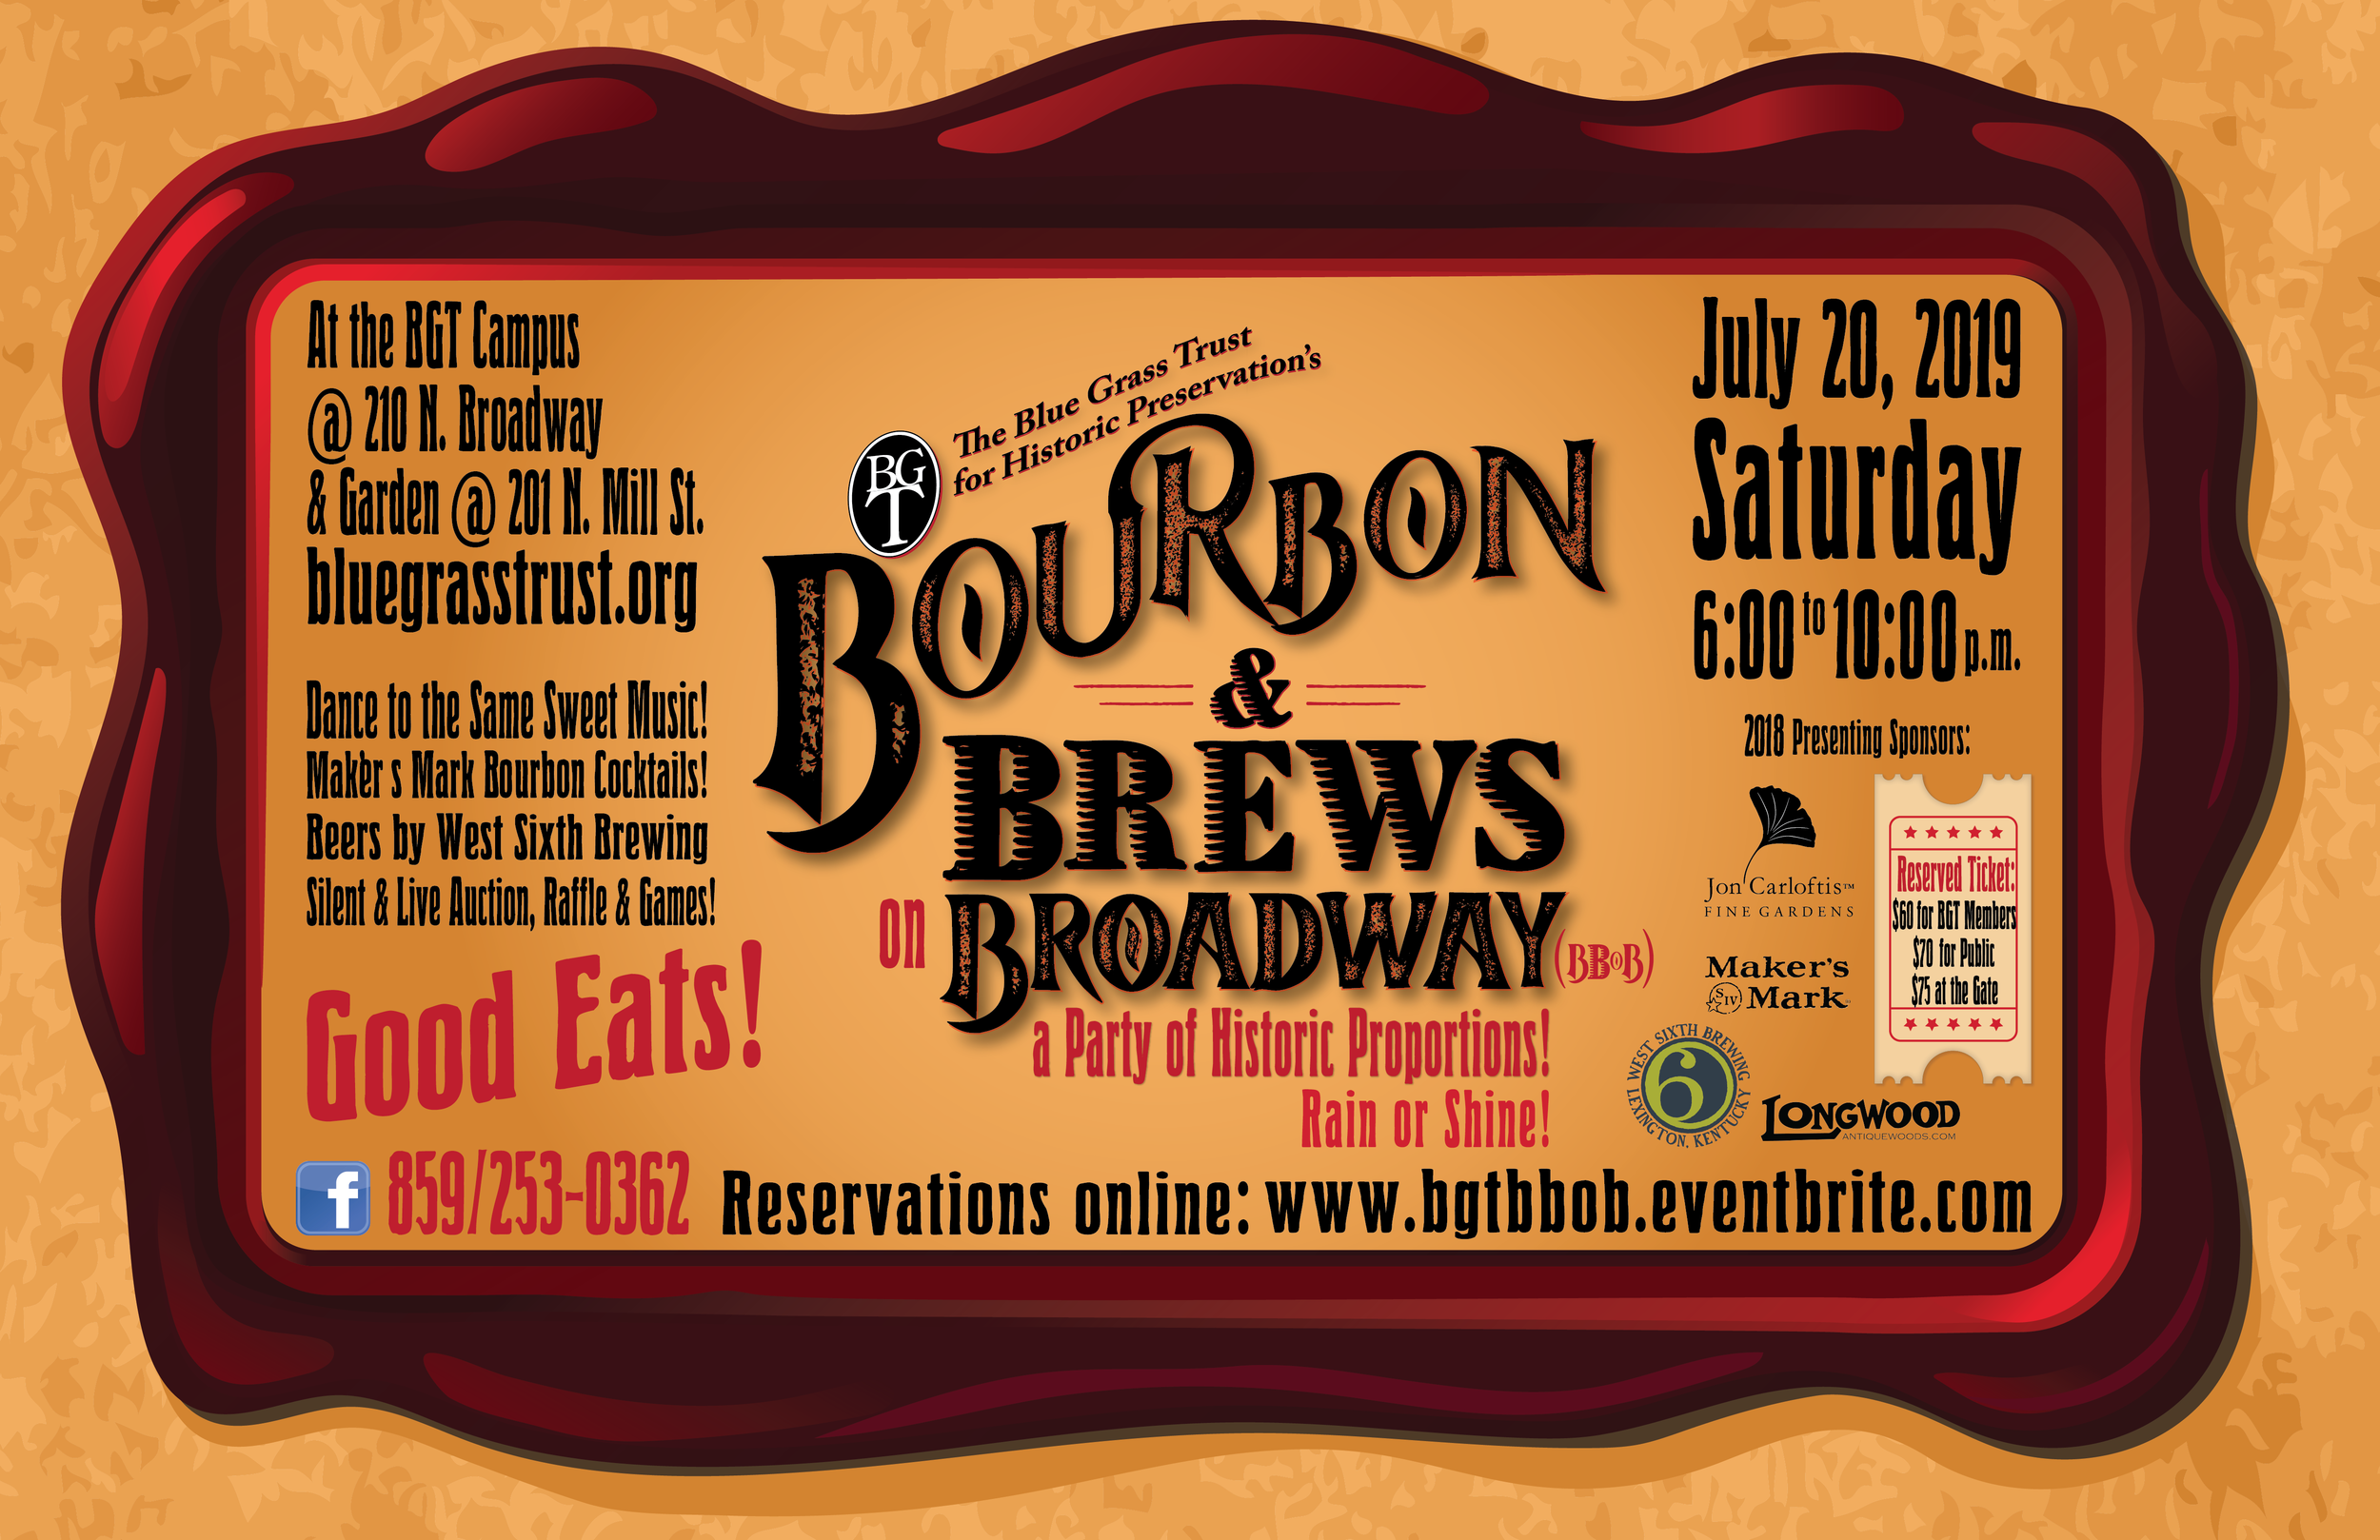 July 20th, pleas be sure to join the Blue Grass Trust for Historic Preservation as we partner again with our great friends at Jon Carloftis Fine Gardens to kick off Bourbon & Brews on Broadway: A Party of Historic Proportions. It is an event you do not want to miss, with that same funkadelic live music, specialty Maker's Mark cocktails created by Lexington's best mixologist, our own beer garden thanks to our friends at West Sixth, Longwood Antique Wood cocktail bar, and plenty of games and art not to mention an impressive collection from our silent auction. All of this will be happening at our BGT campus at the Dr. Thomas Hunt Morgan House (210 N. Broadway) and Hopemont, the Hunt-Morgan House (201 N. Mill Street) from 6:00 p.m. to 10:00 p.m. Last year the party sold out so be sure to reserve your spot ASAP.  Reservations for Bourbon & Brews on Broadway are $60.00 for members and $70.00 for non-members with each purchase including 5 drink tickets and summer classic cooking from Catering by Donna.